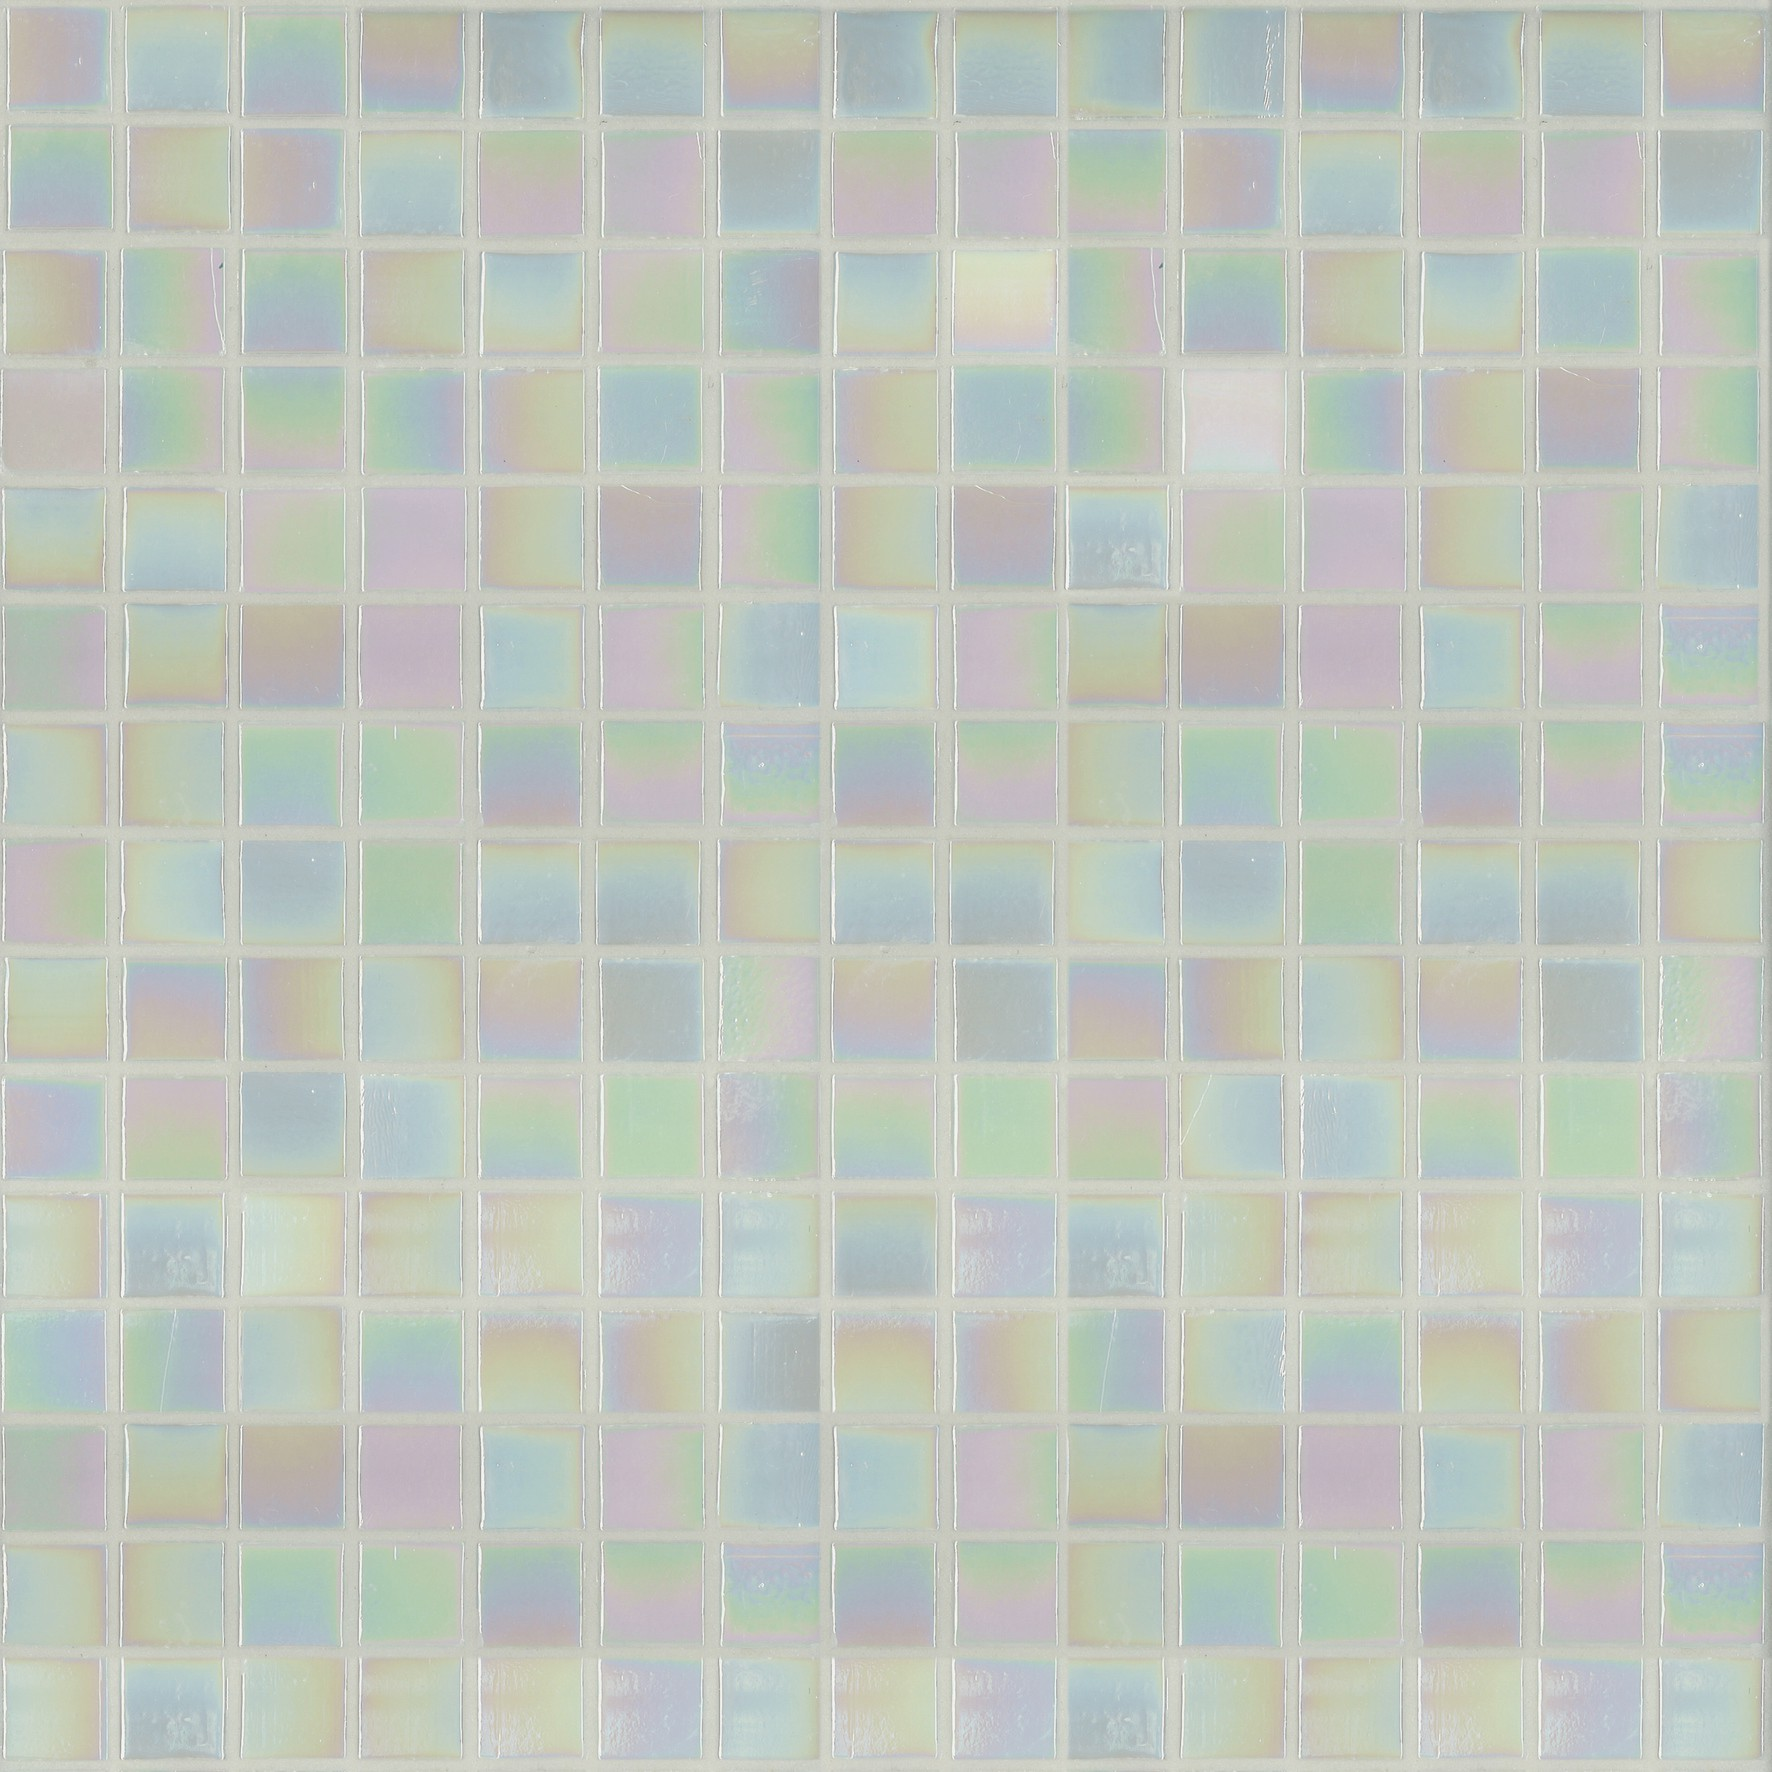 "Bisazza Gloss GL 12 Glass Mosaic Tile 20mm - 3/4"", 1 sheet"